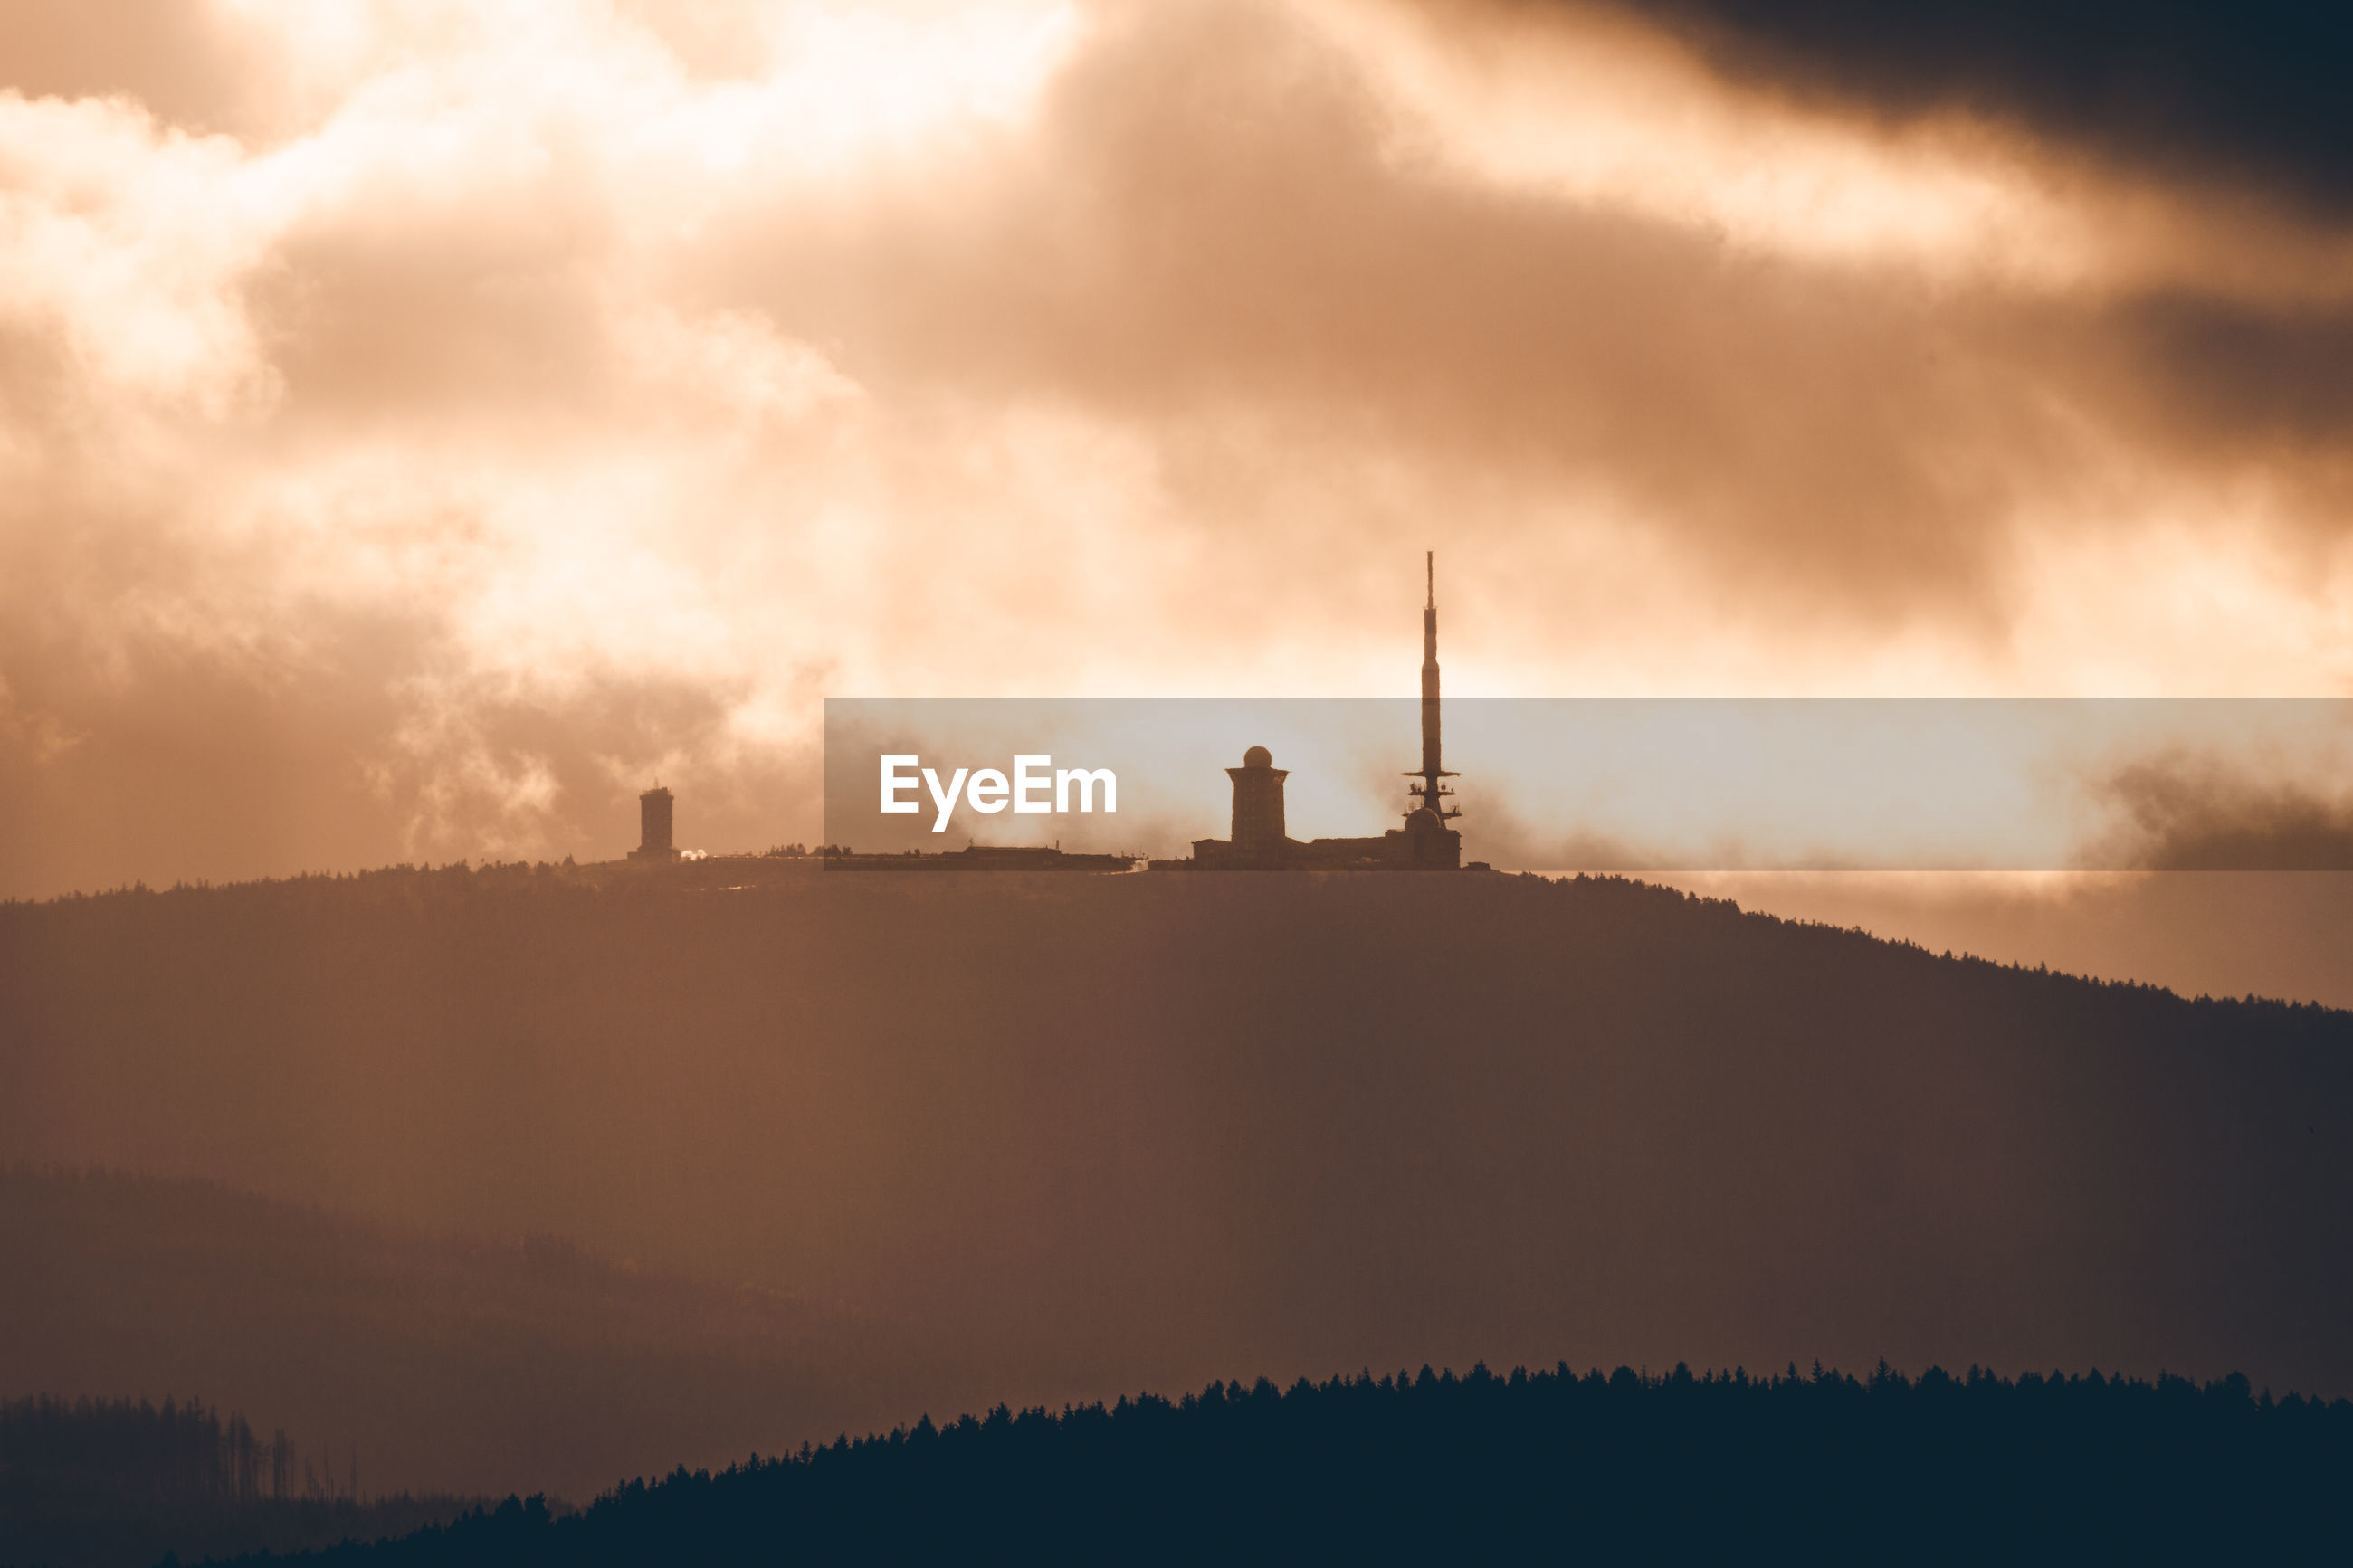 SILHOUETTE OF COMMUNICATIONS TOWER AGAINST SKY DURING SUNSET